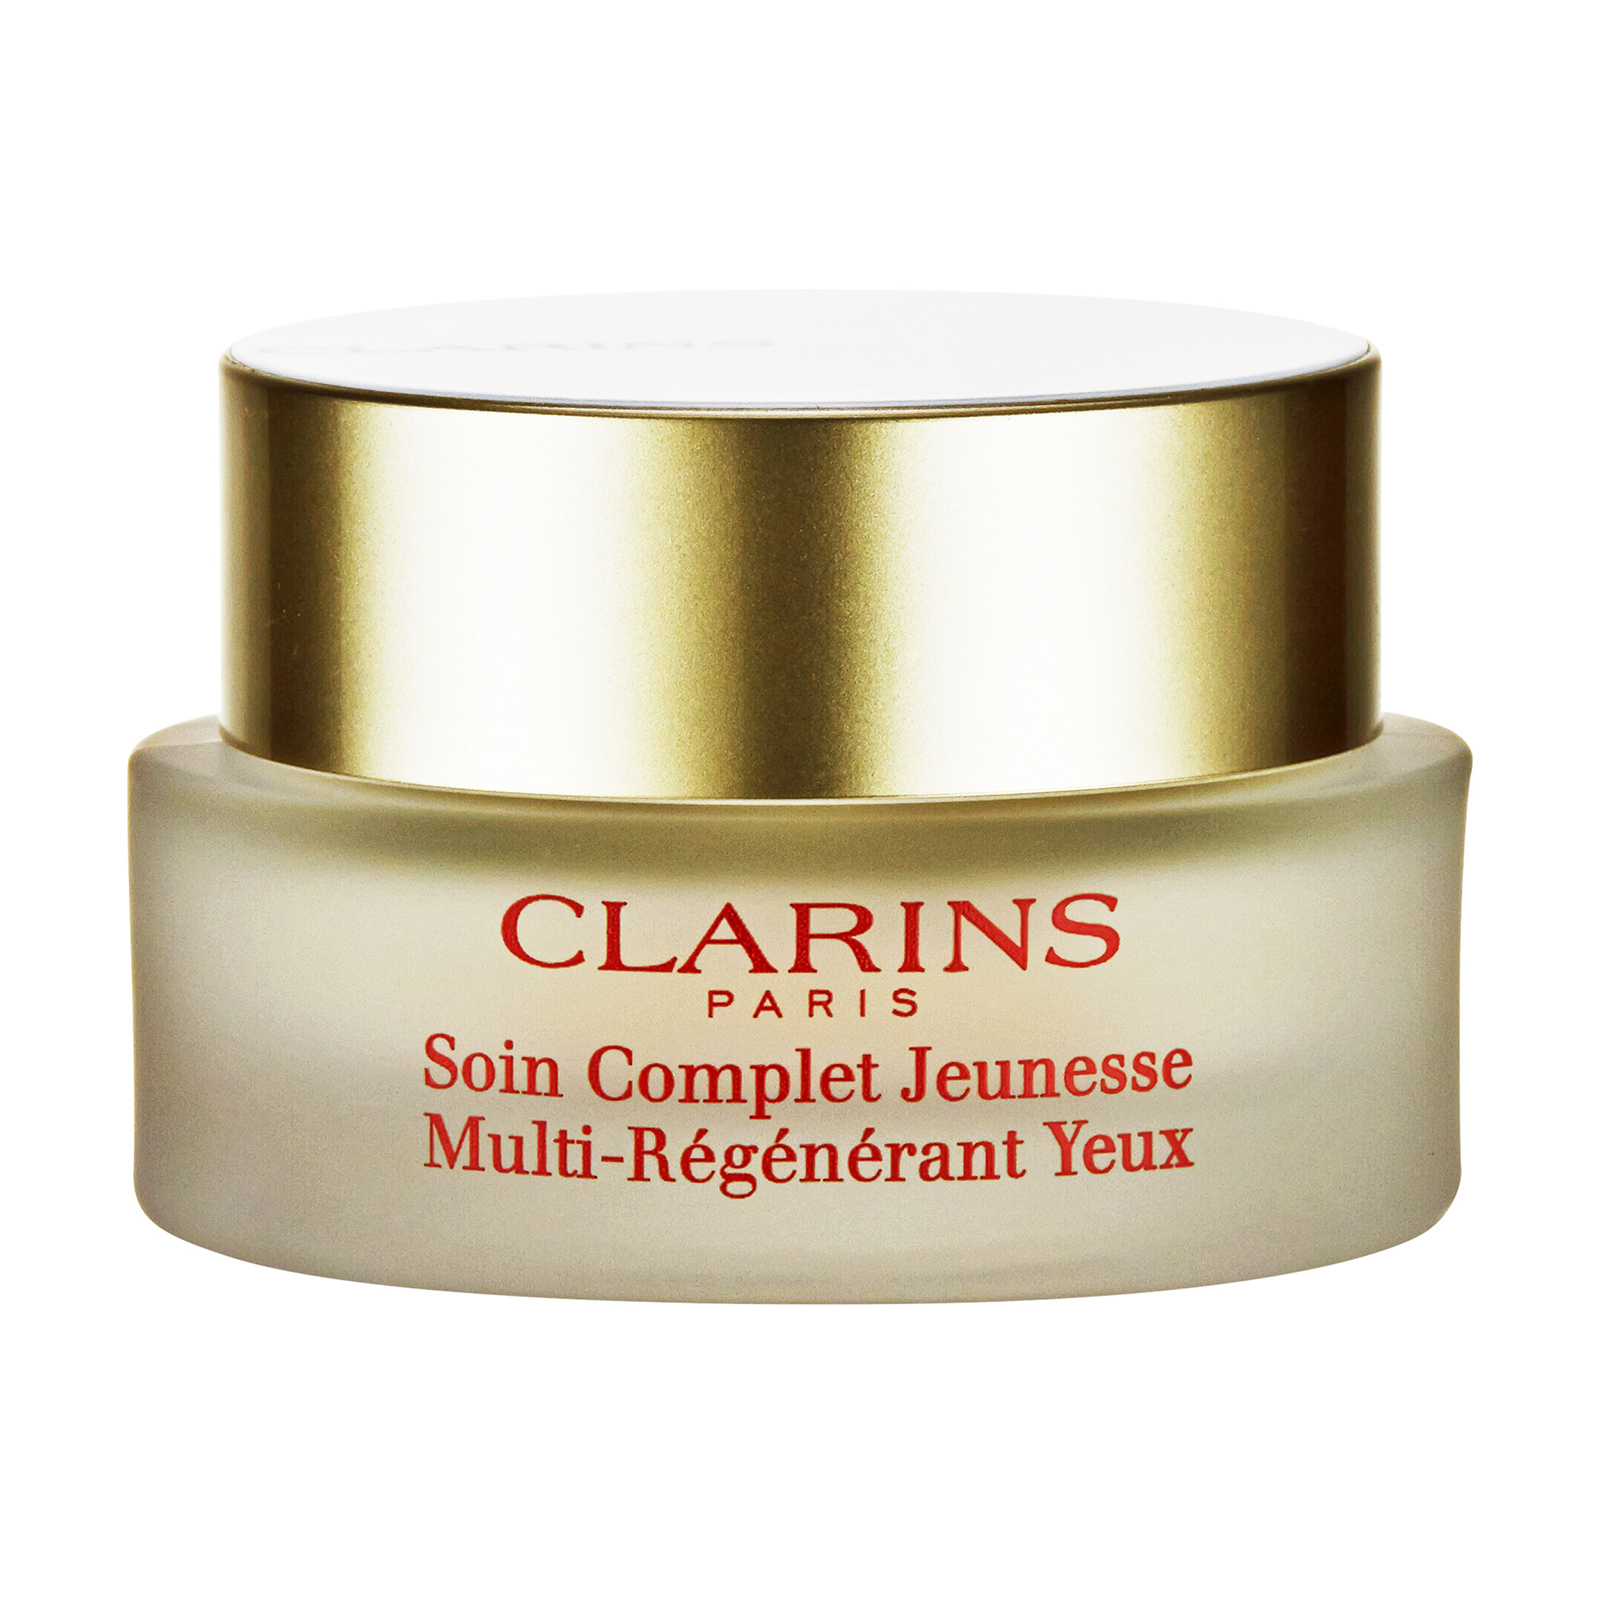 Clarins Extra-Firming  Extra-Firming Eye Complete Rejuvenating Cream 0.5oz, 15ml